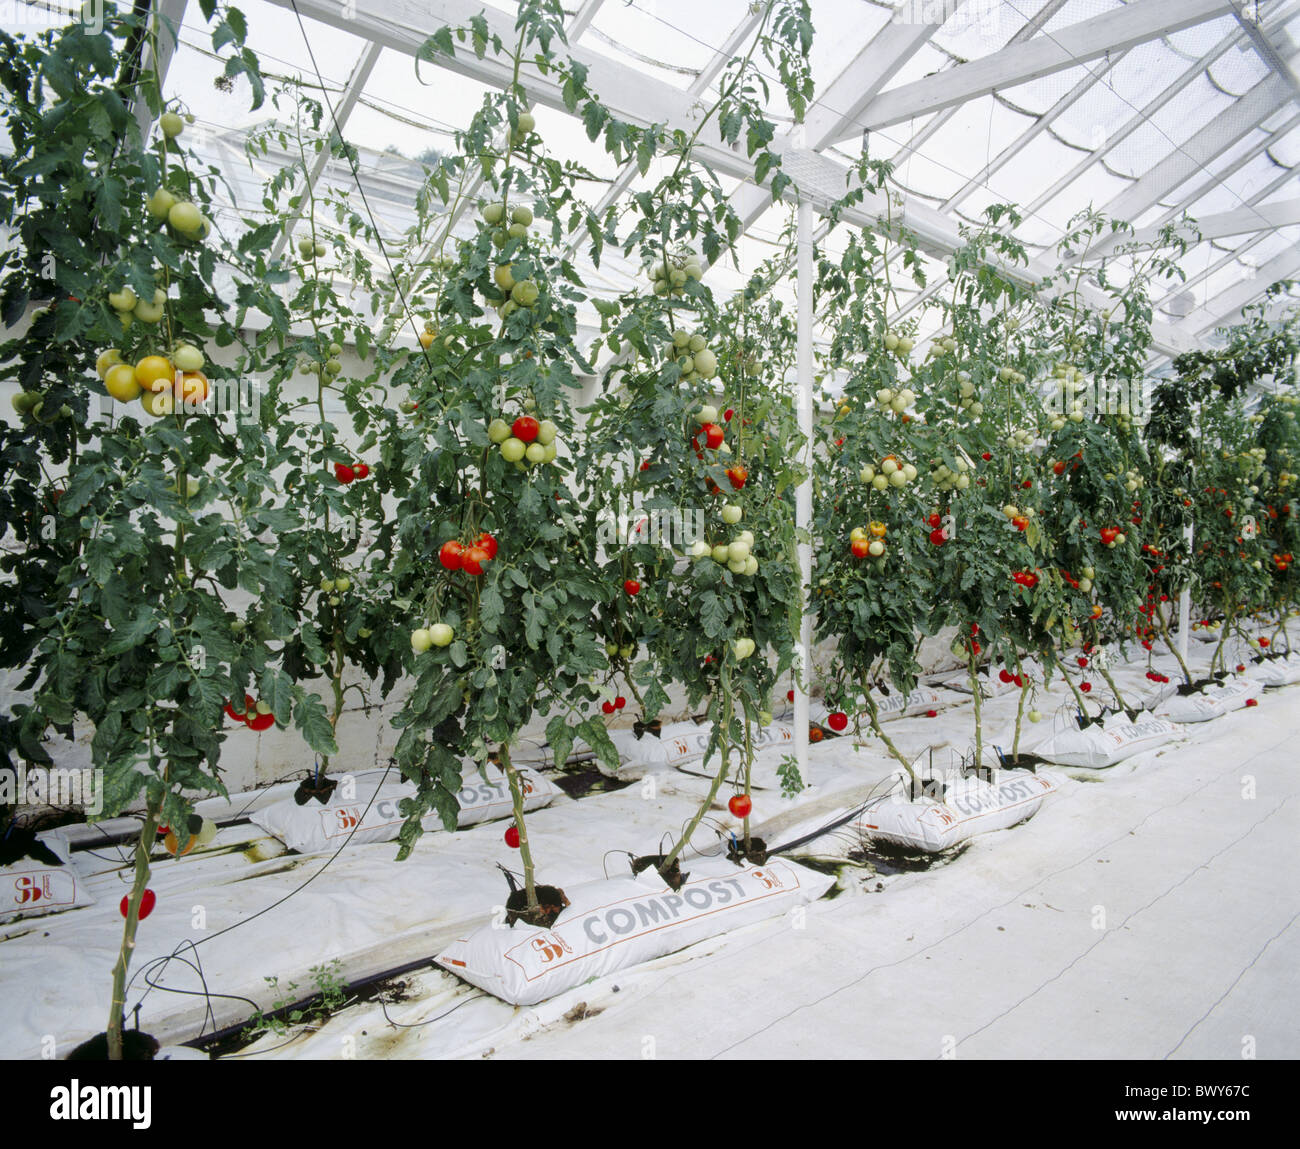 vegetables Hors sol compost bags plants tomatoes hothouse